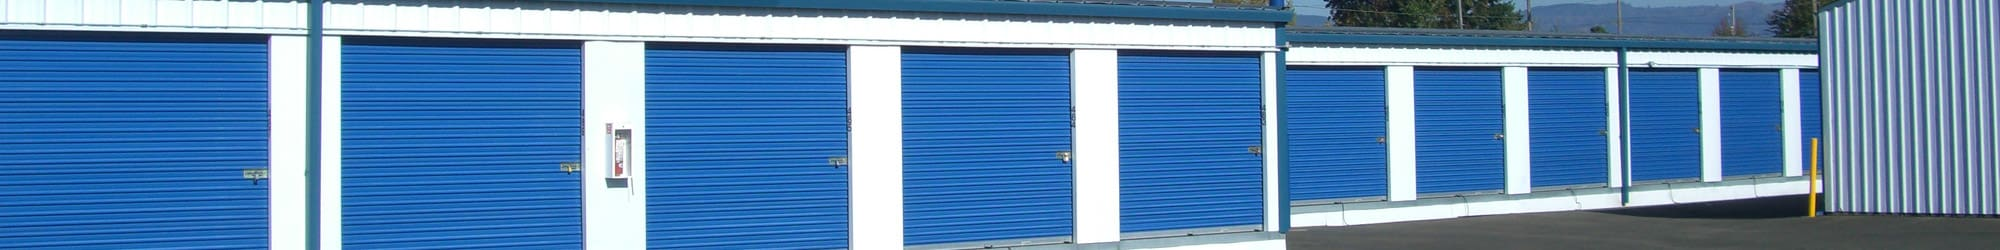 Size help for self storage units at Stor-N-Lok